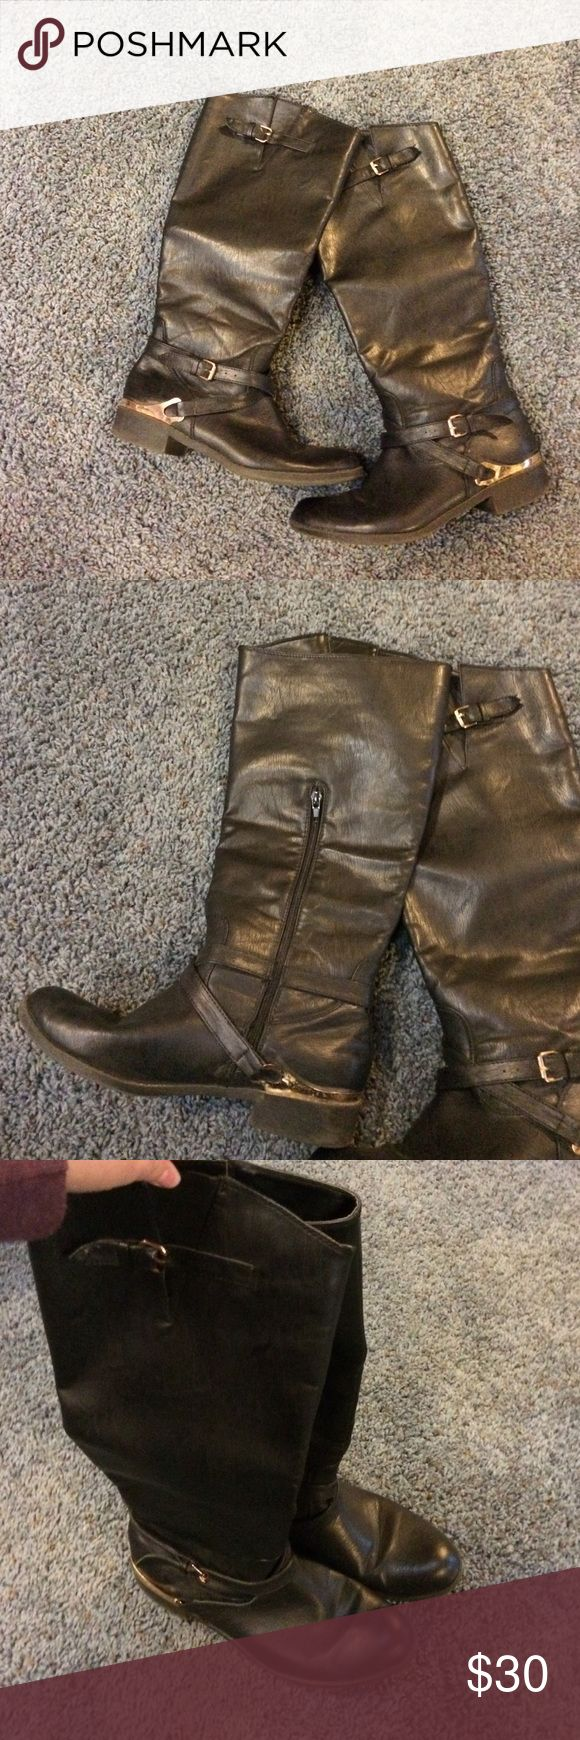 Shoe dazzle Charlene Black riding boot 8 Shows signs of wear such as slight fading and scuffs on metal. Sole also shows wear. I do NOT trade. Let's make a bundle deal! Shoe Dazzle Shoes Winter & Rain Boots